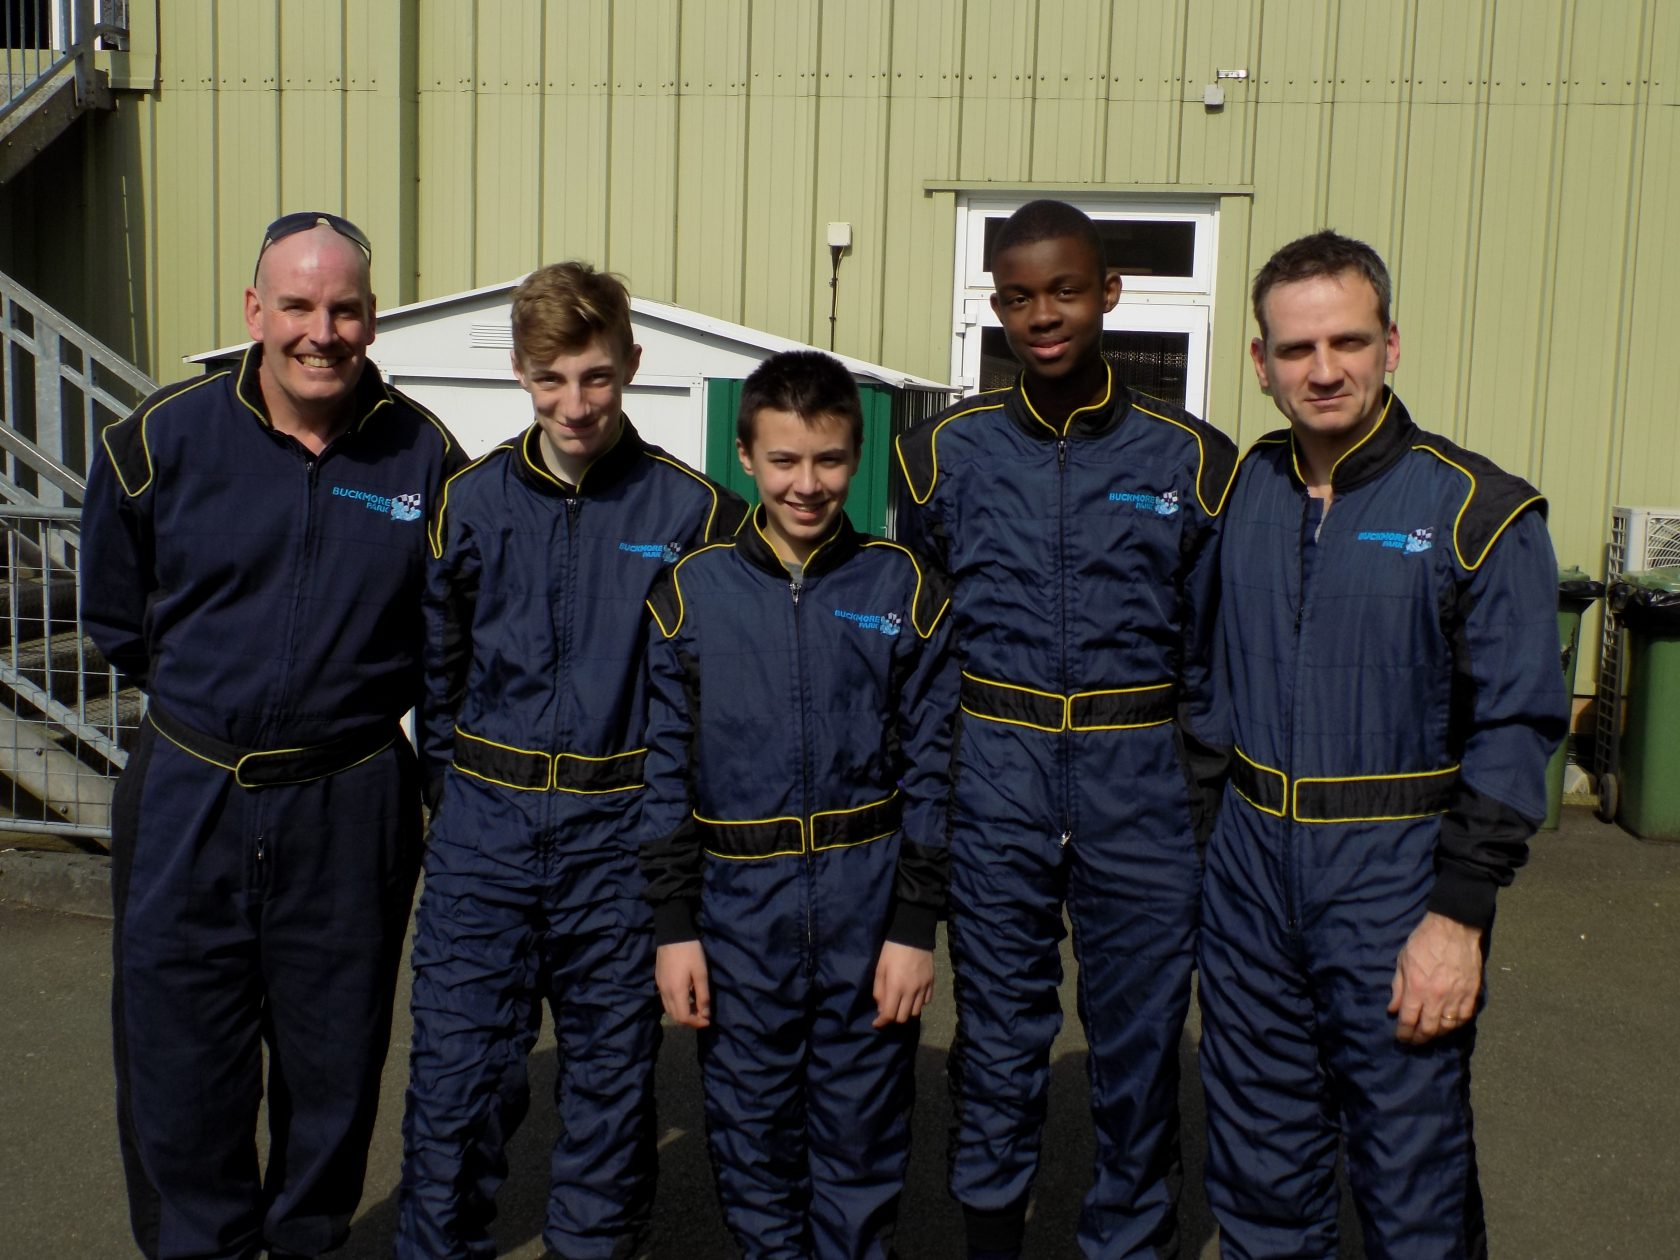 Success at the British Schools Karting Championship 2018